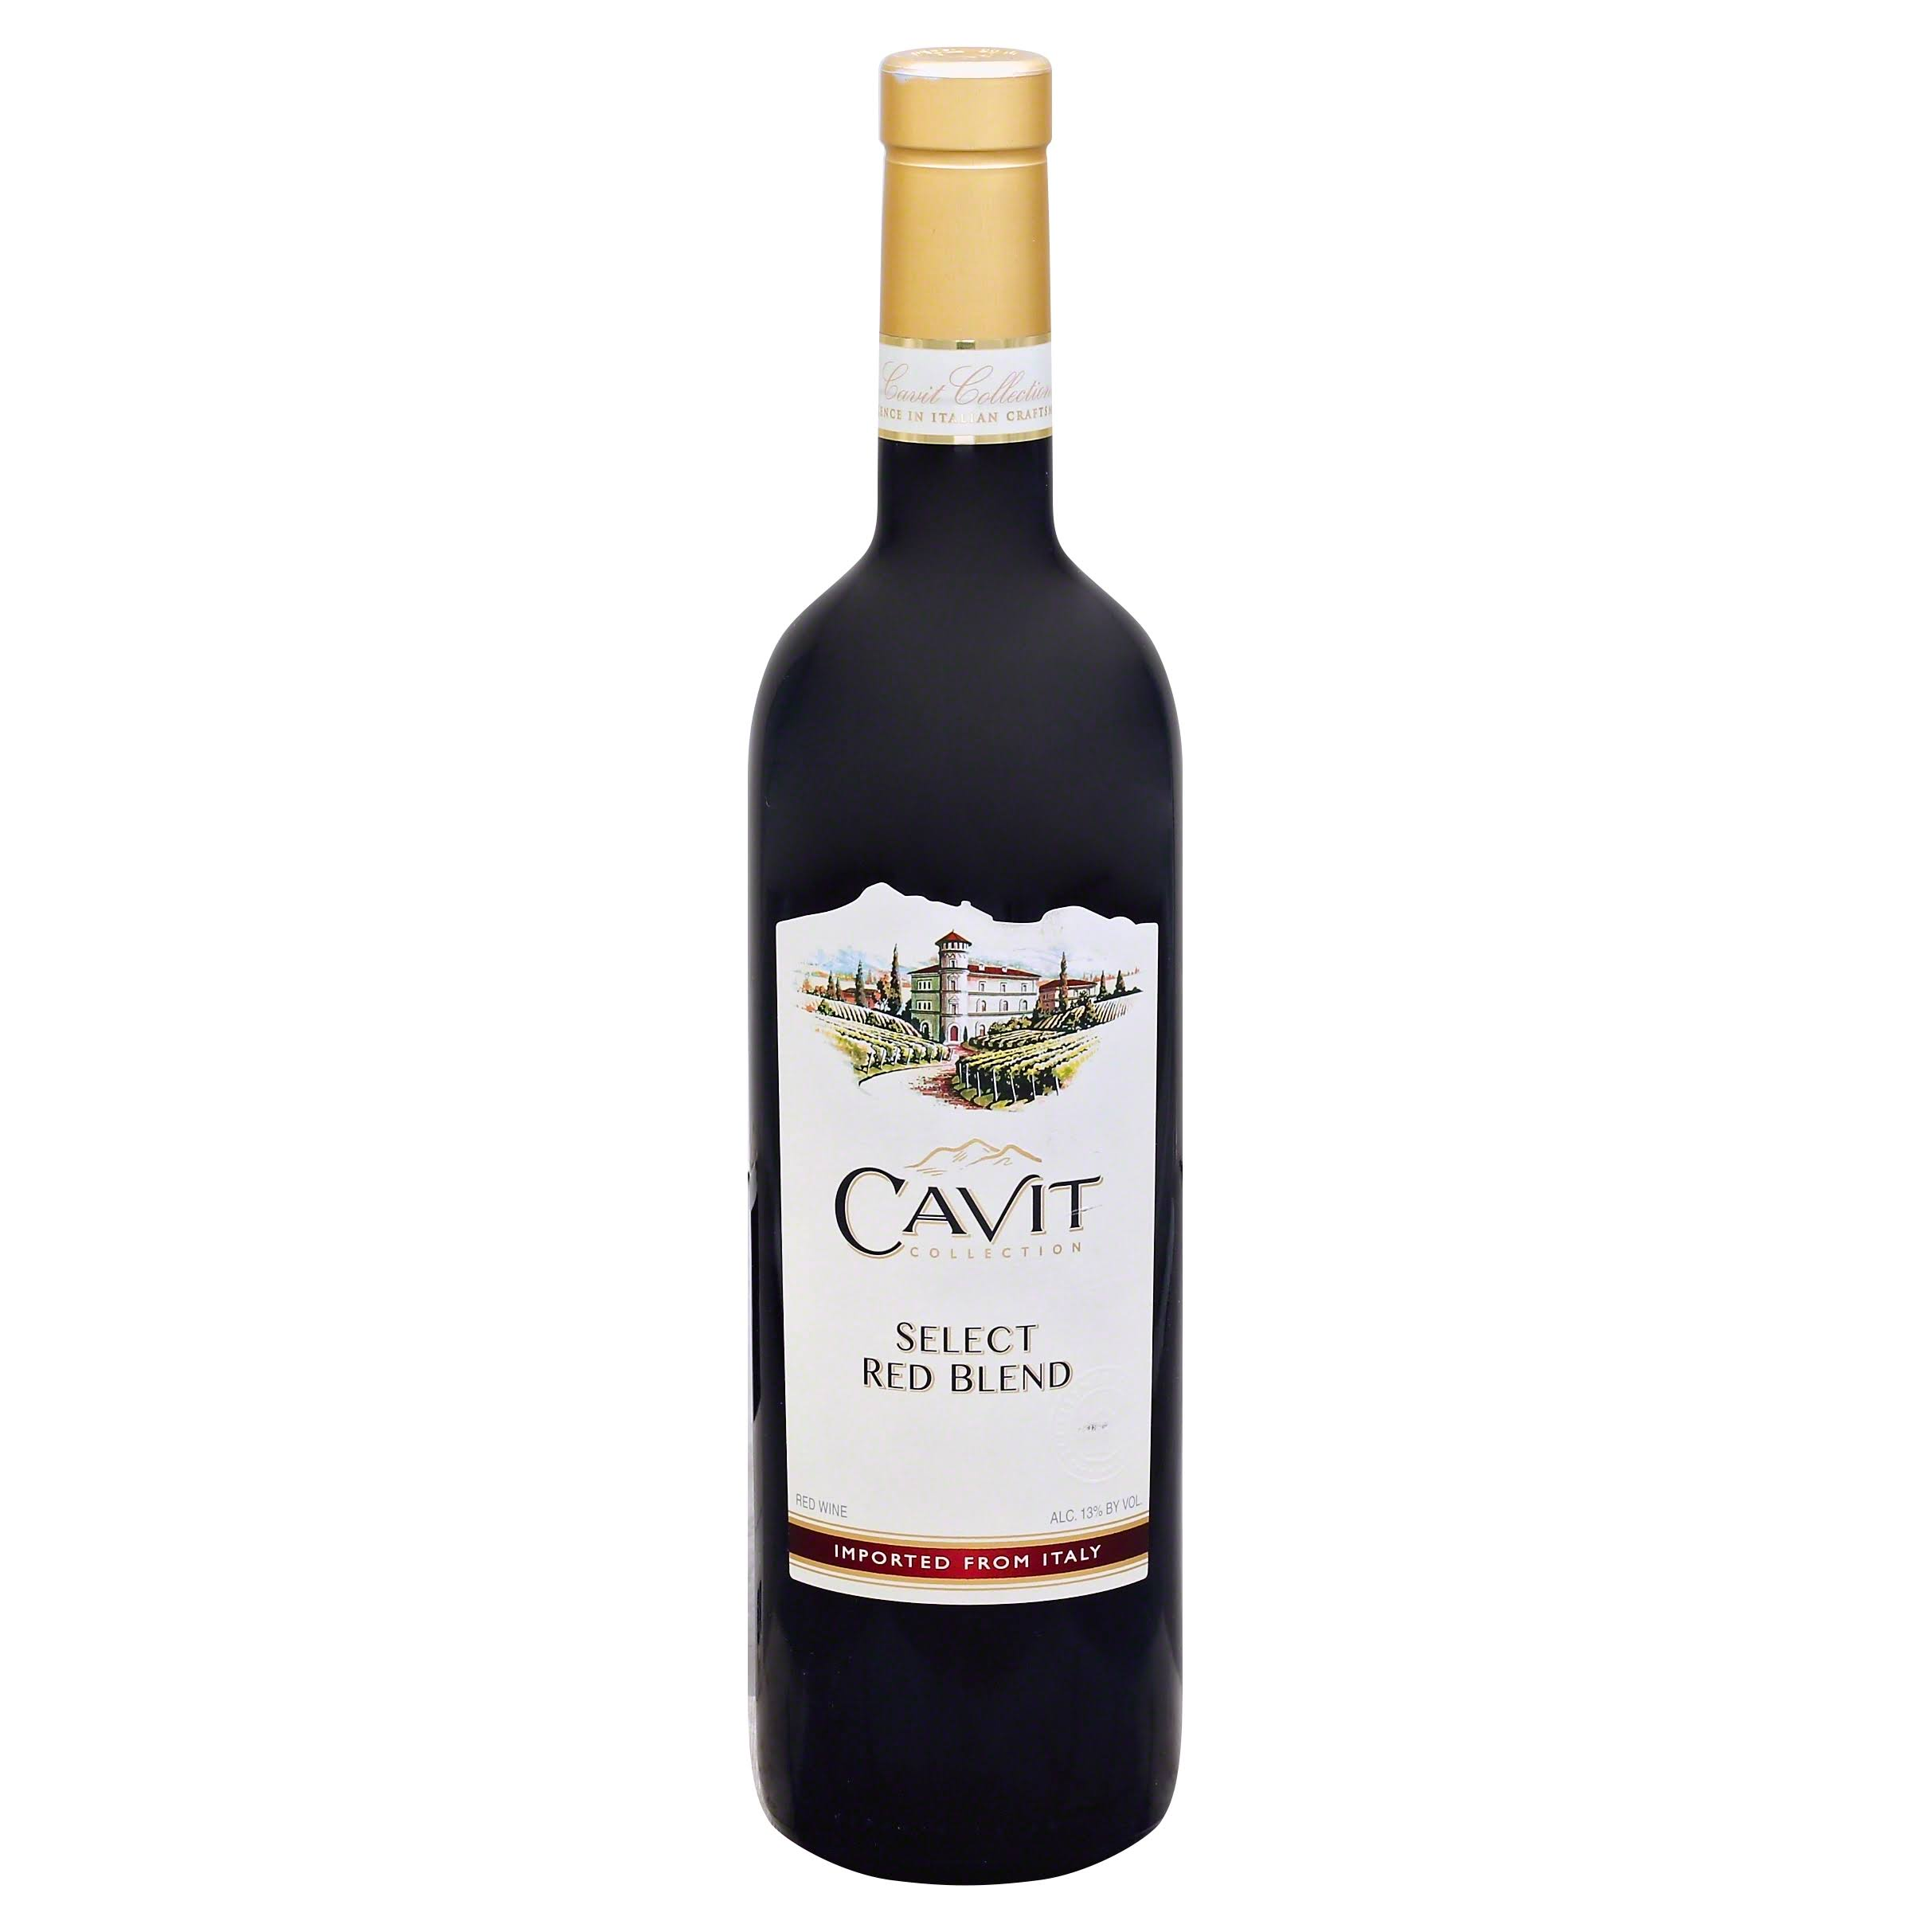 Cavit Select Red Blend, Italy (Vintage Varies) - 750 ml bottle